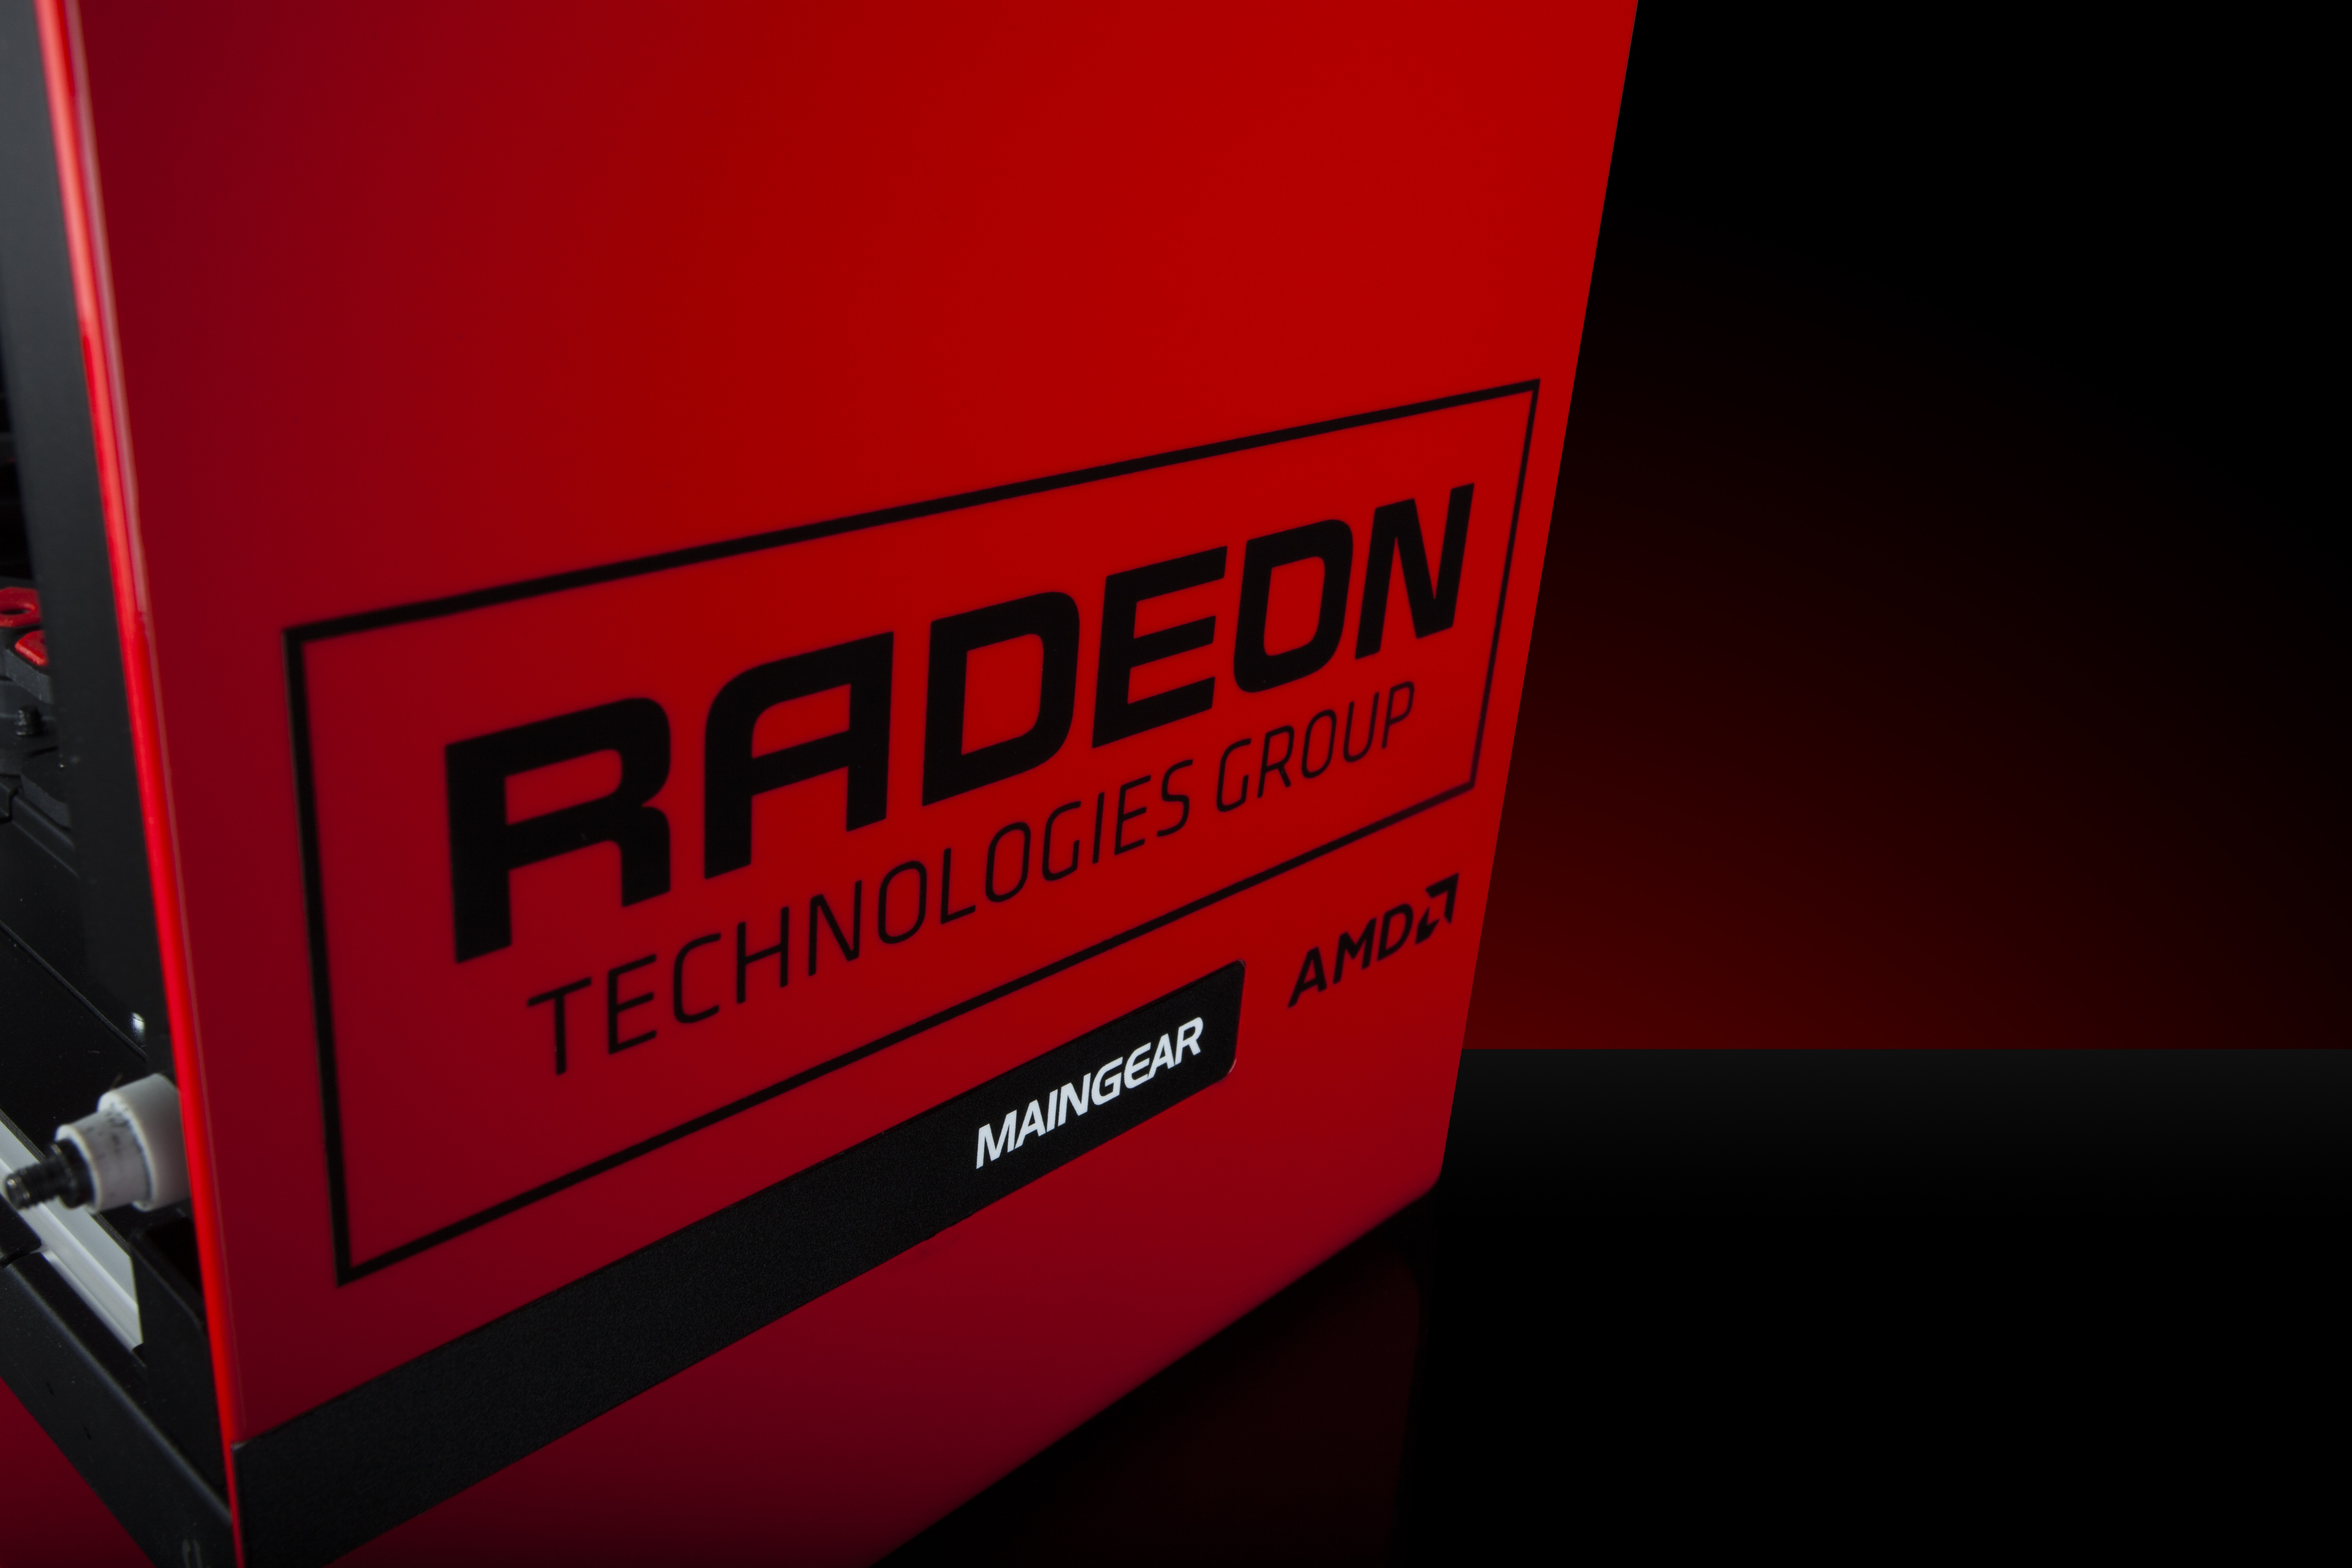 amd wallpapers teamstealth - photo #12